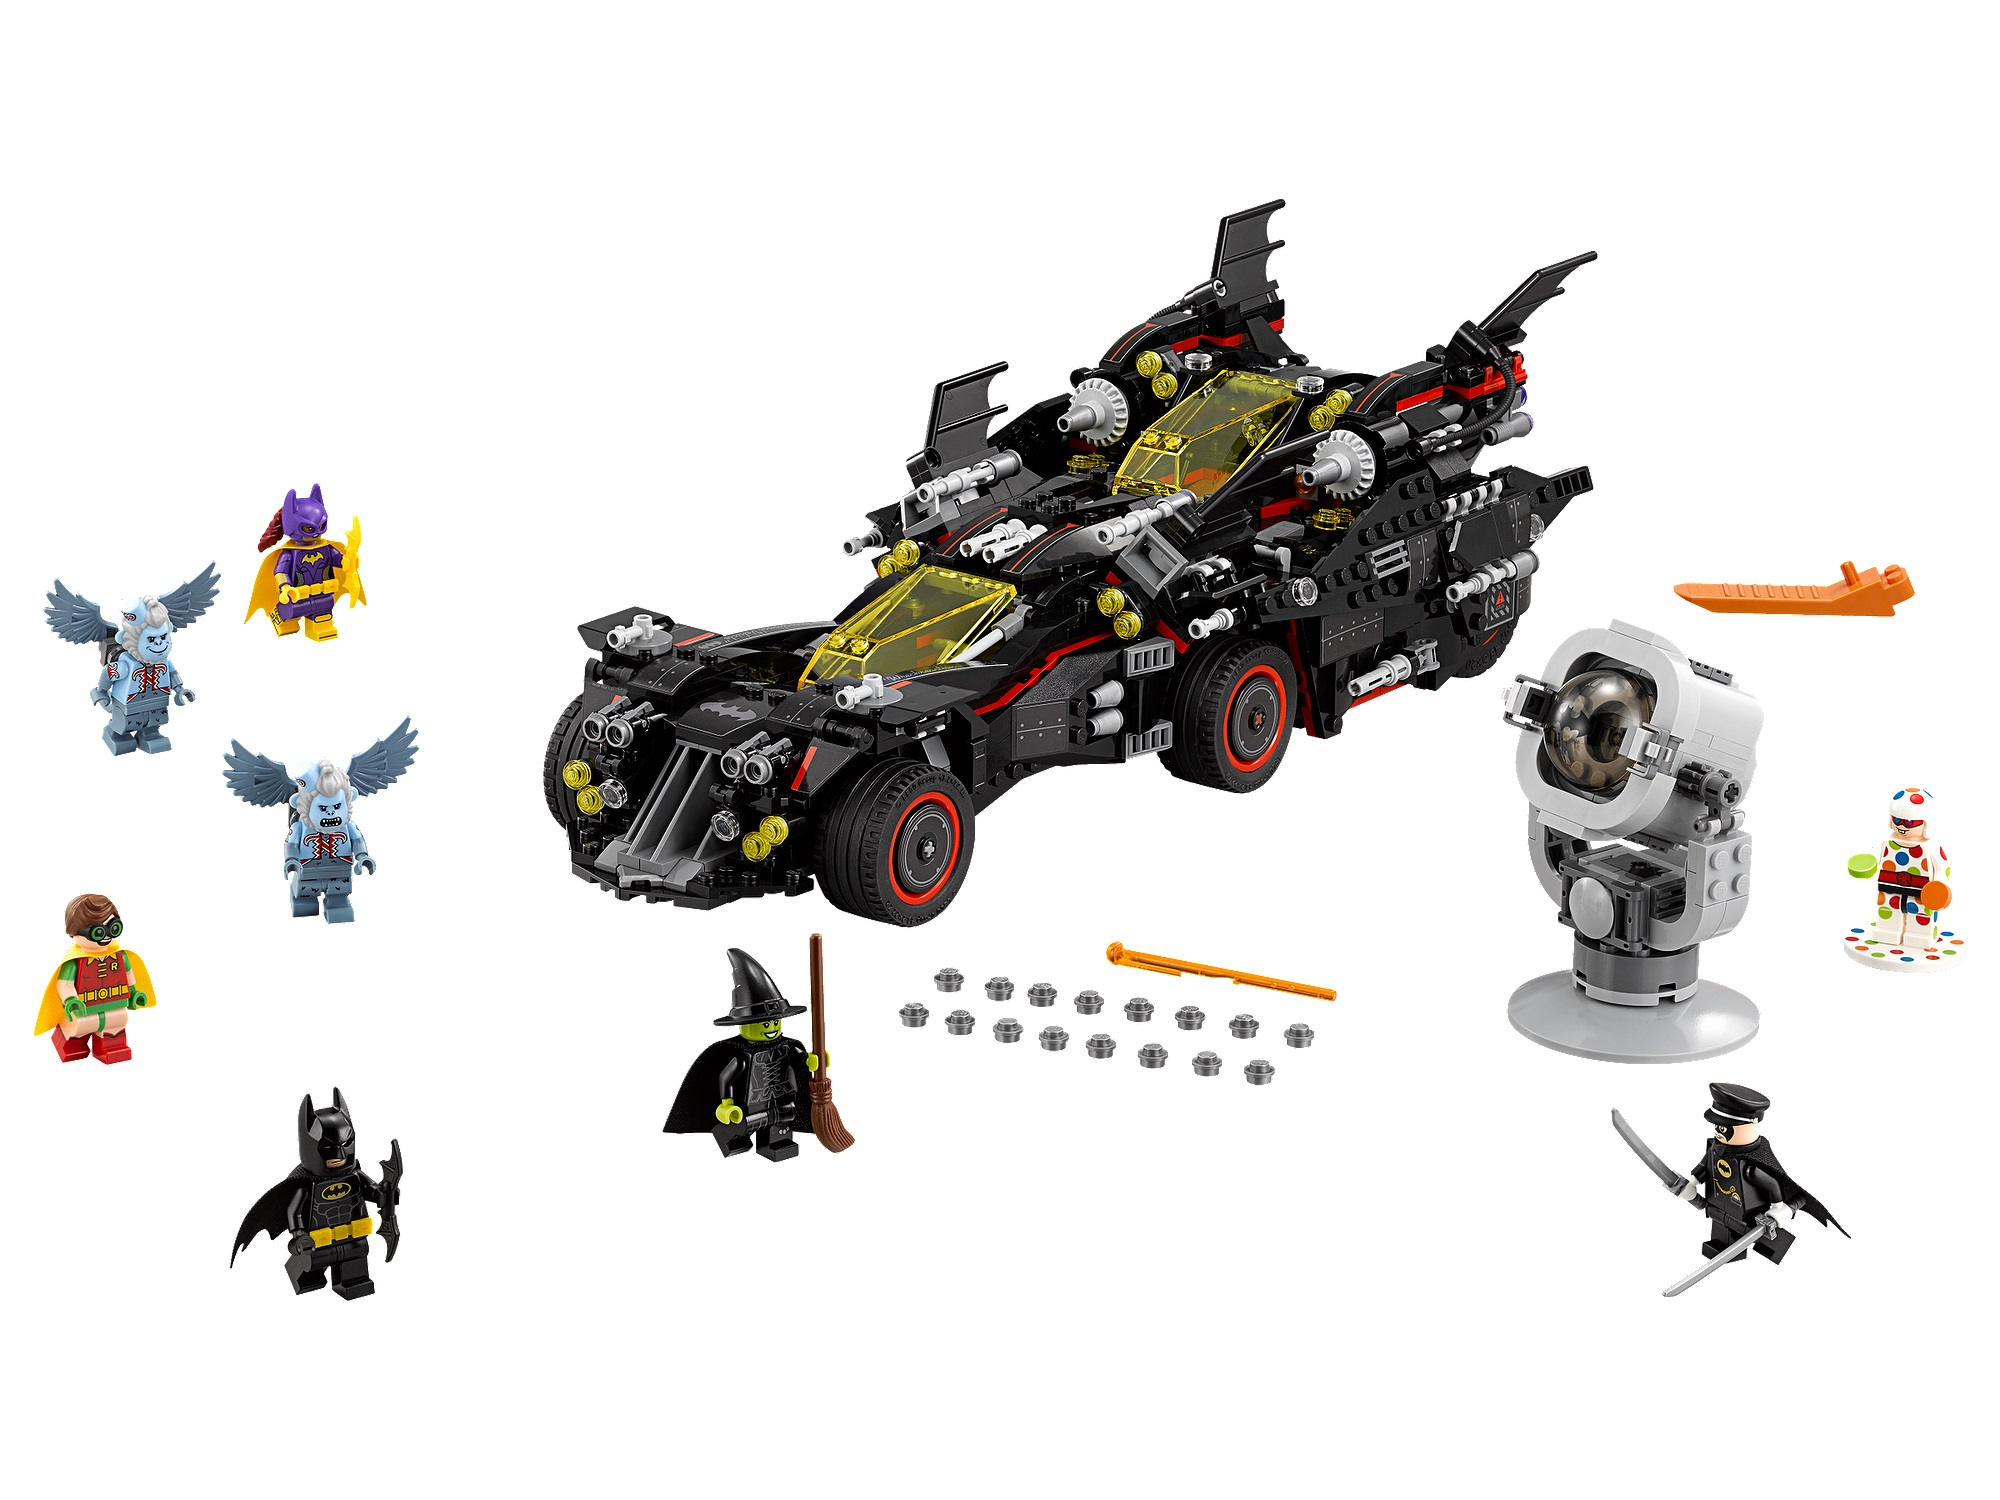 lego batman sets 2017 - photo #37